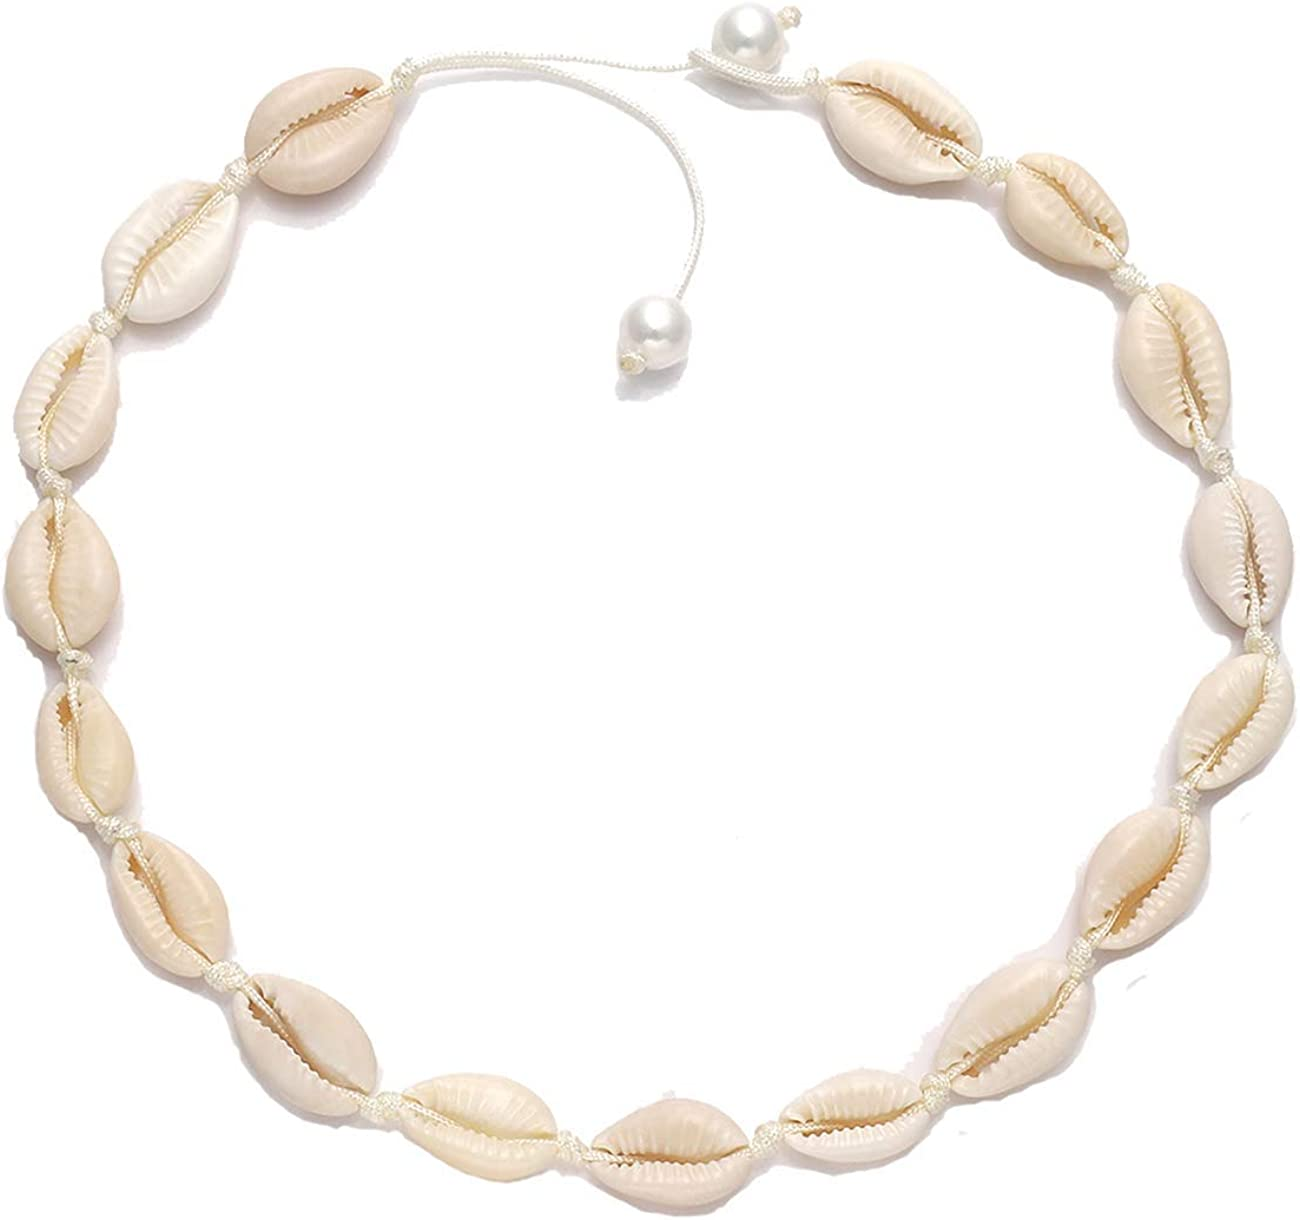 MILIMI Shell Choker Necklace Natural Cowrie Pearls Seashell Necklace Adjustable Handmade Cored Bracelet Hawaiian Beach Jewelry Set for Women Girl